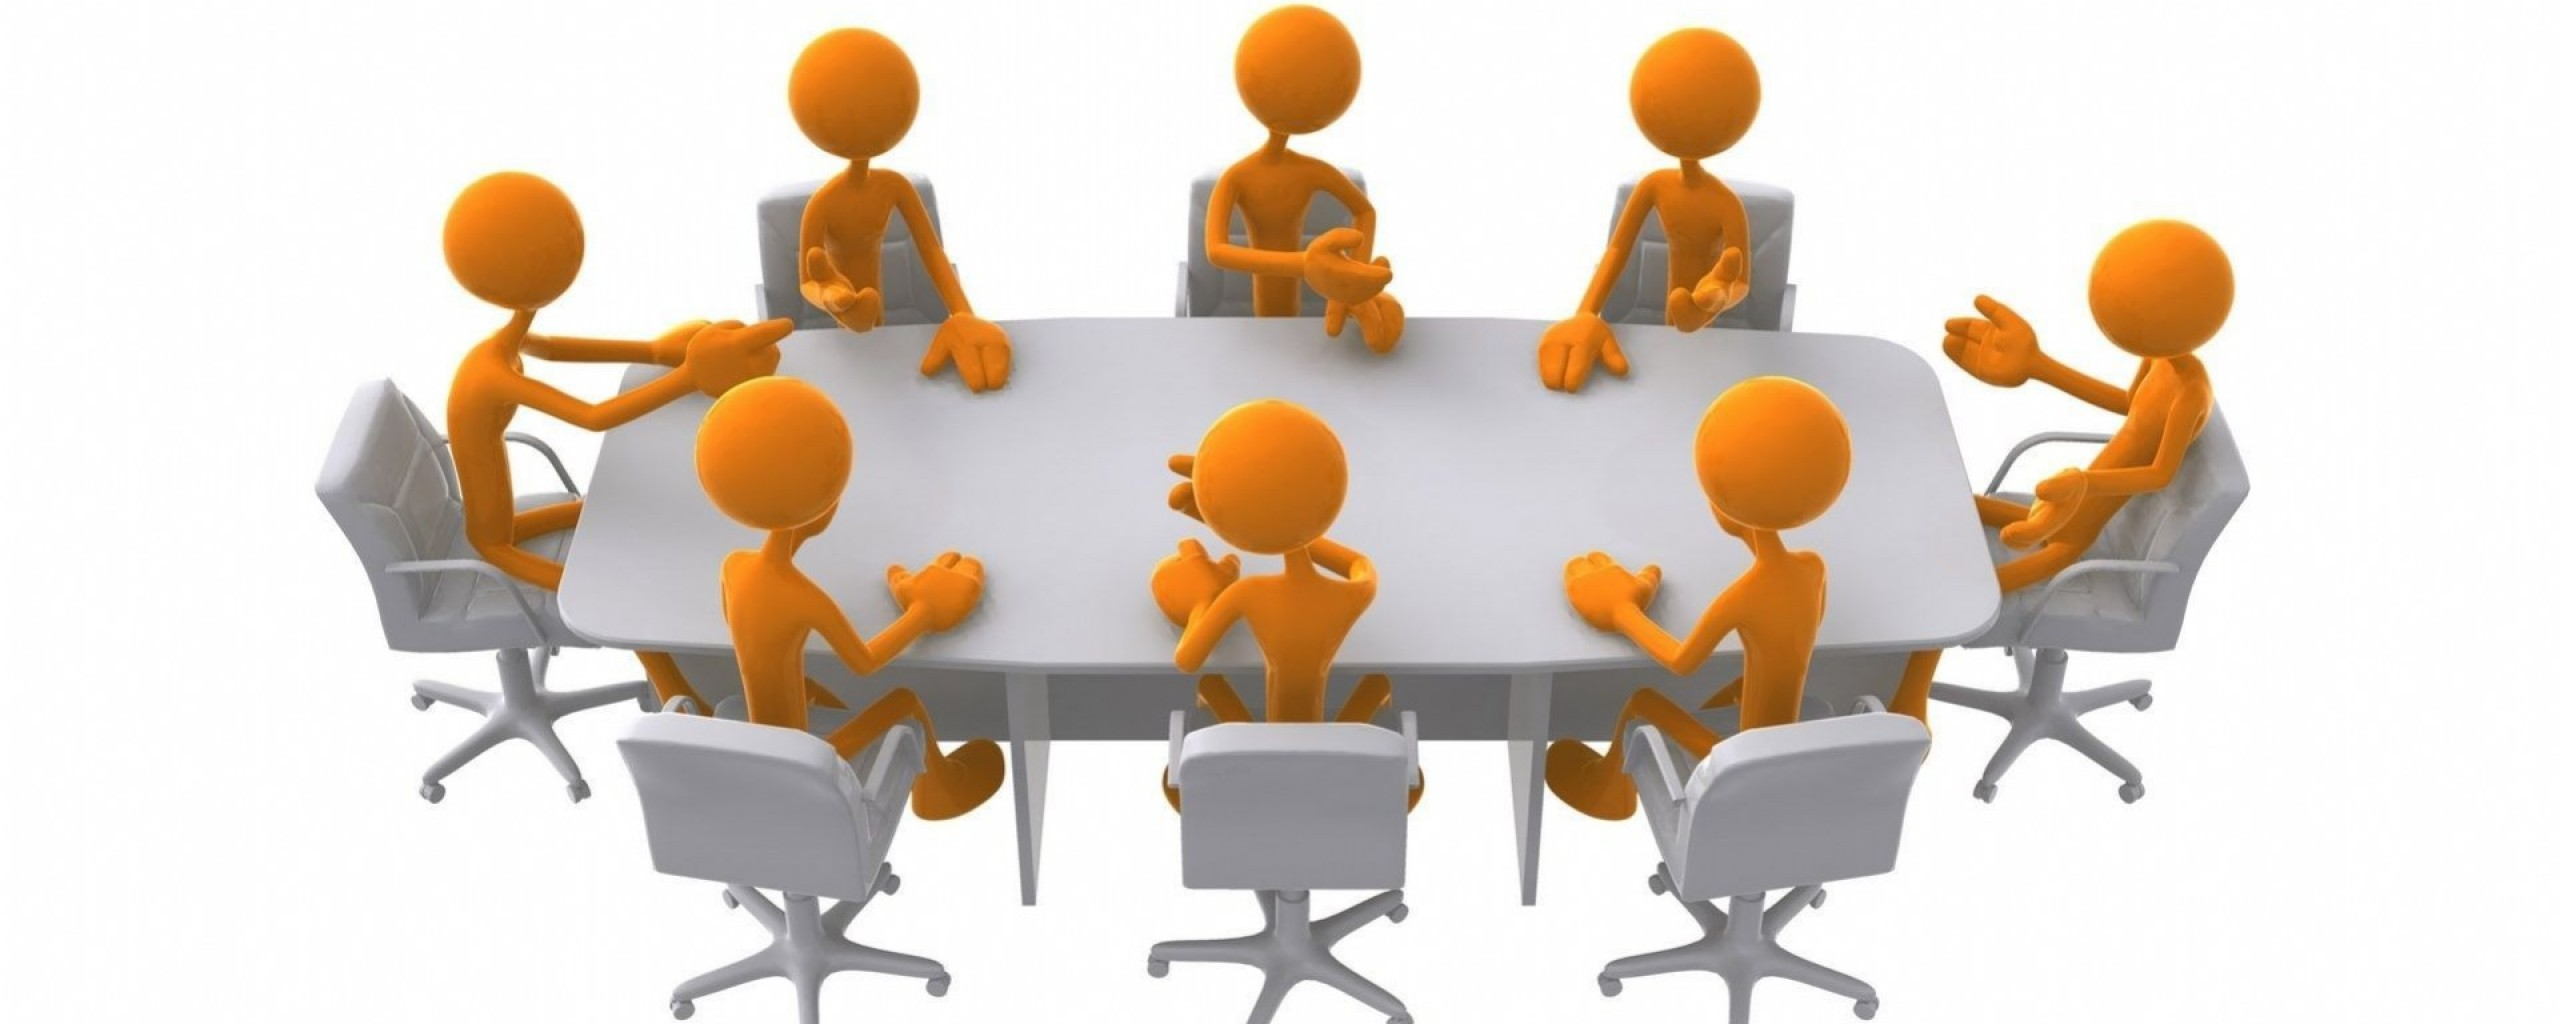 conference clip art clipart panda free clipart images rh clipartpanda com conference clipart free conference images clipart